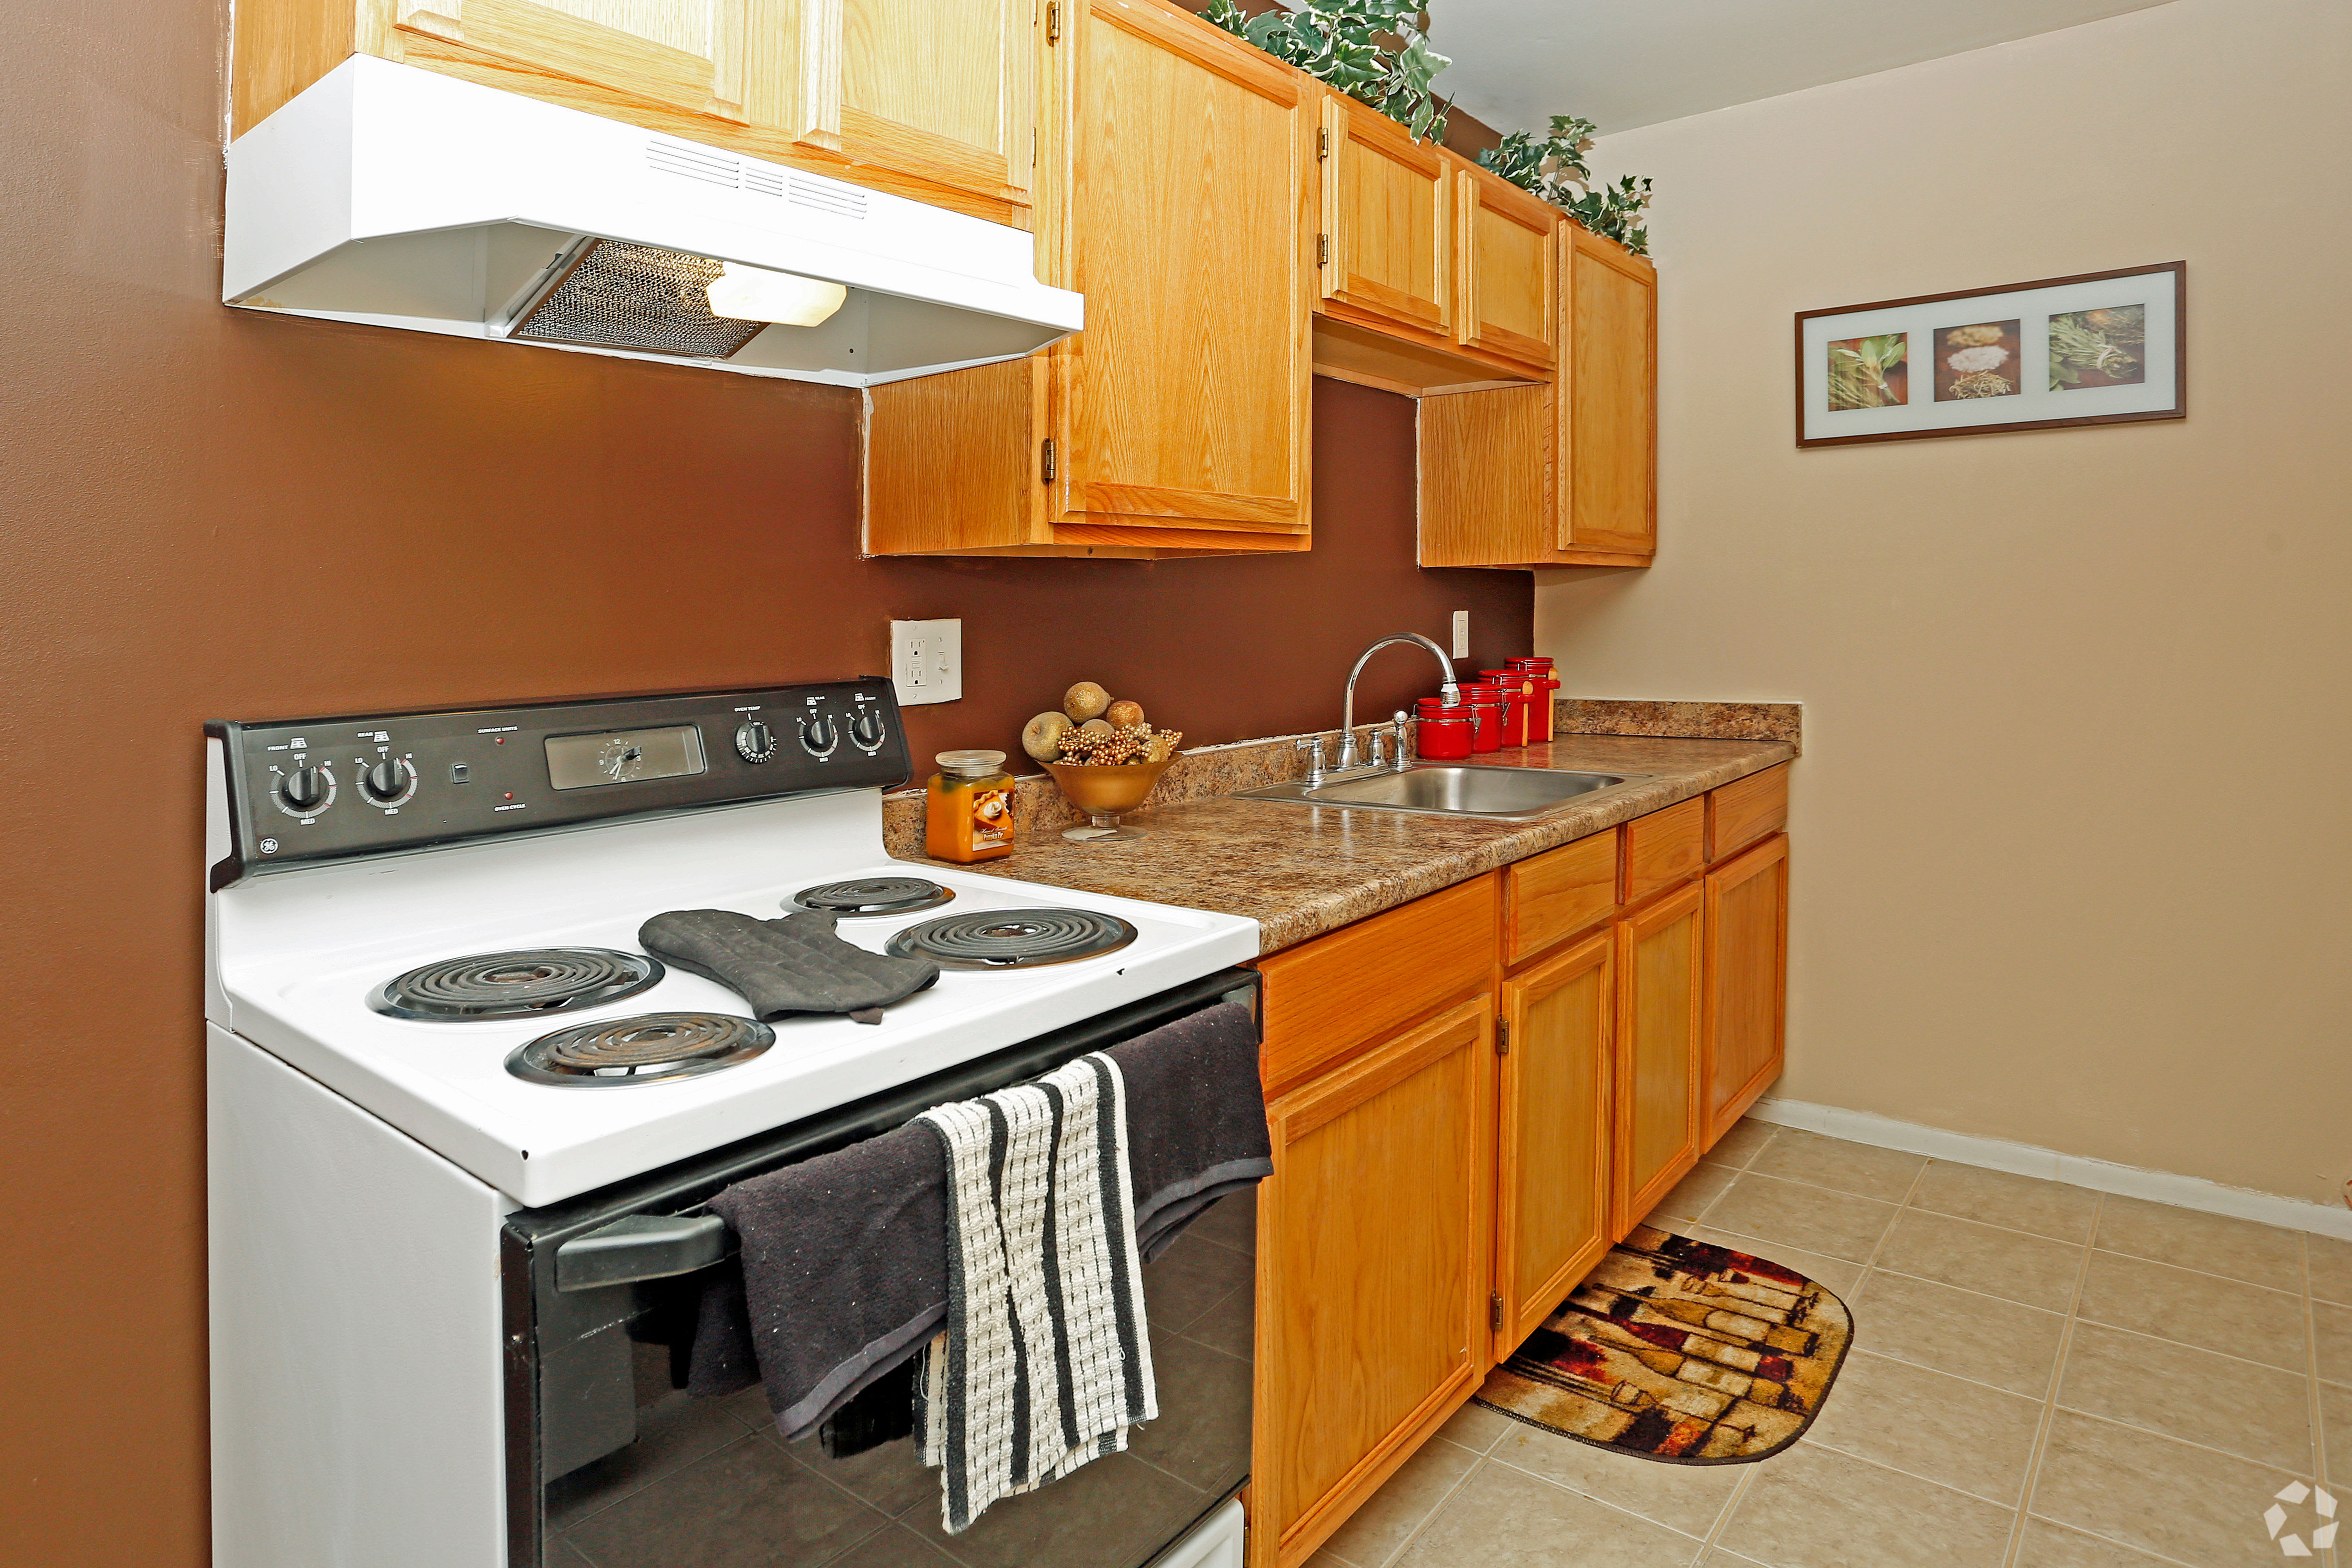 Hoover Square Apartments offers a renovated kitchen in Warren, Michigan